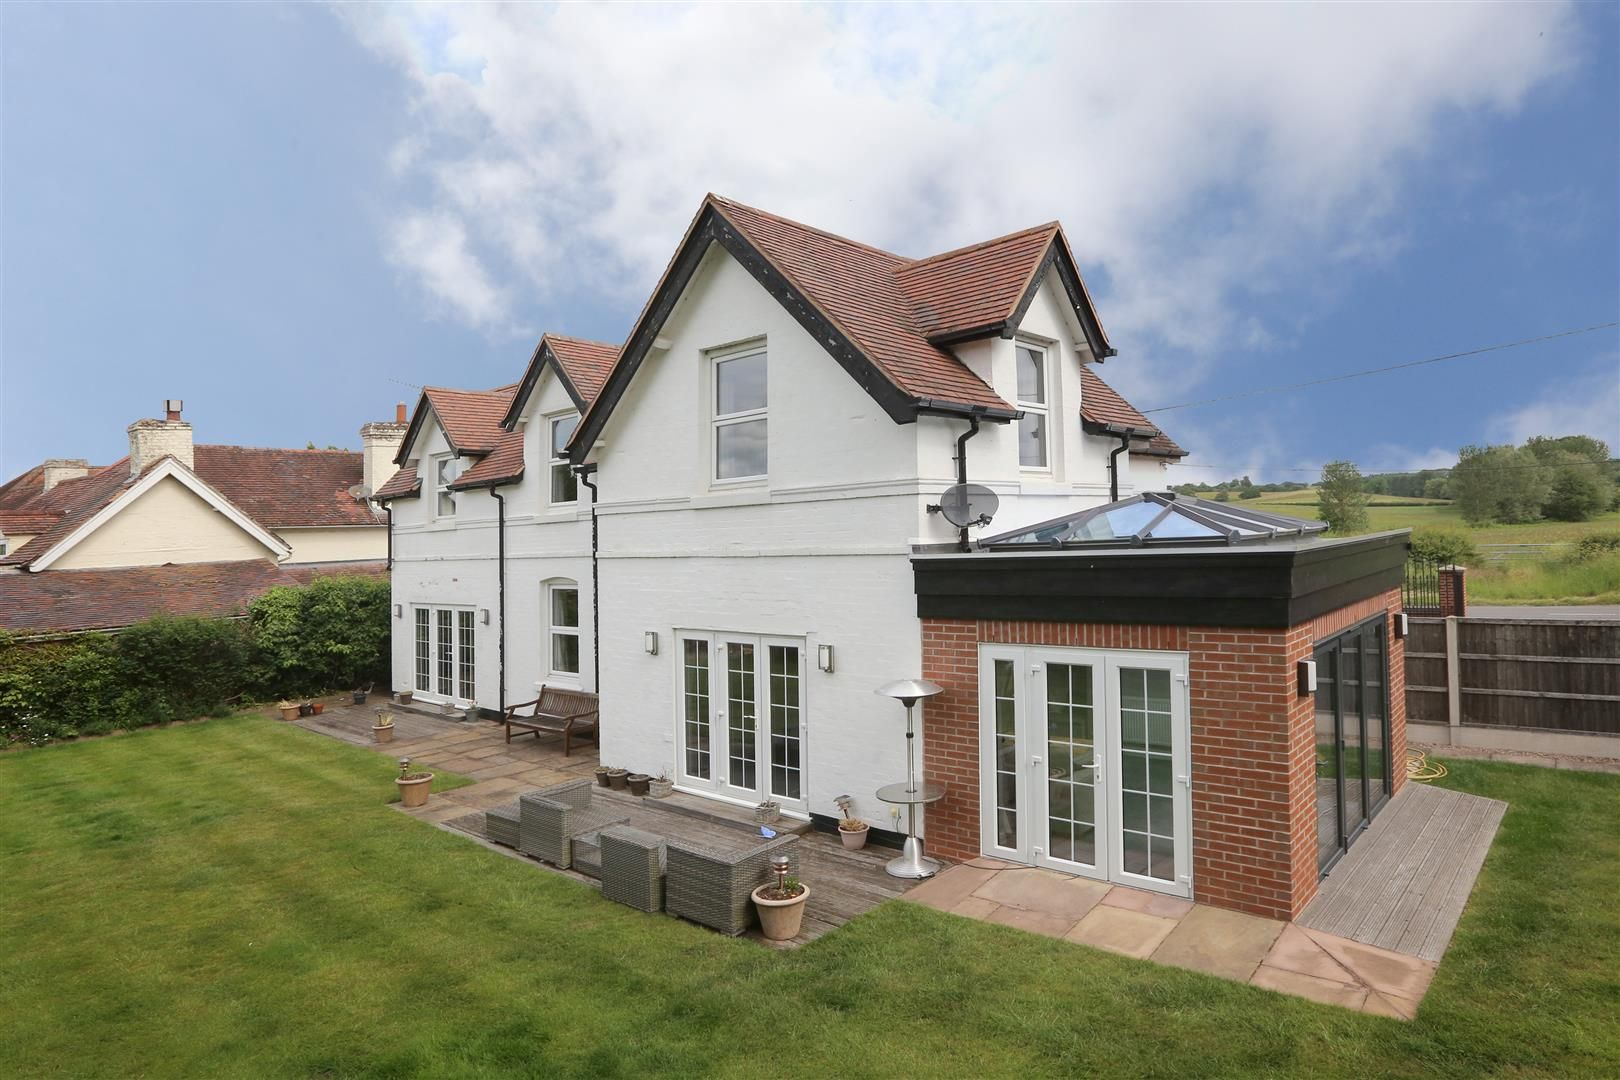 4 bed house for sale in Churchill 31